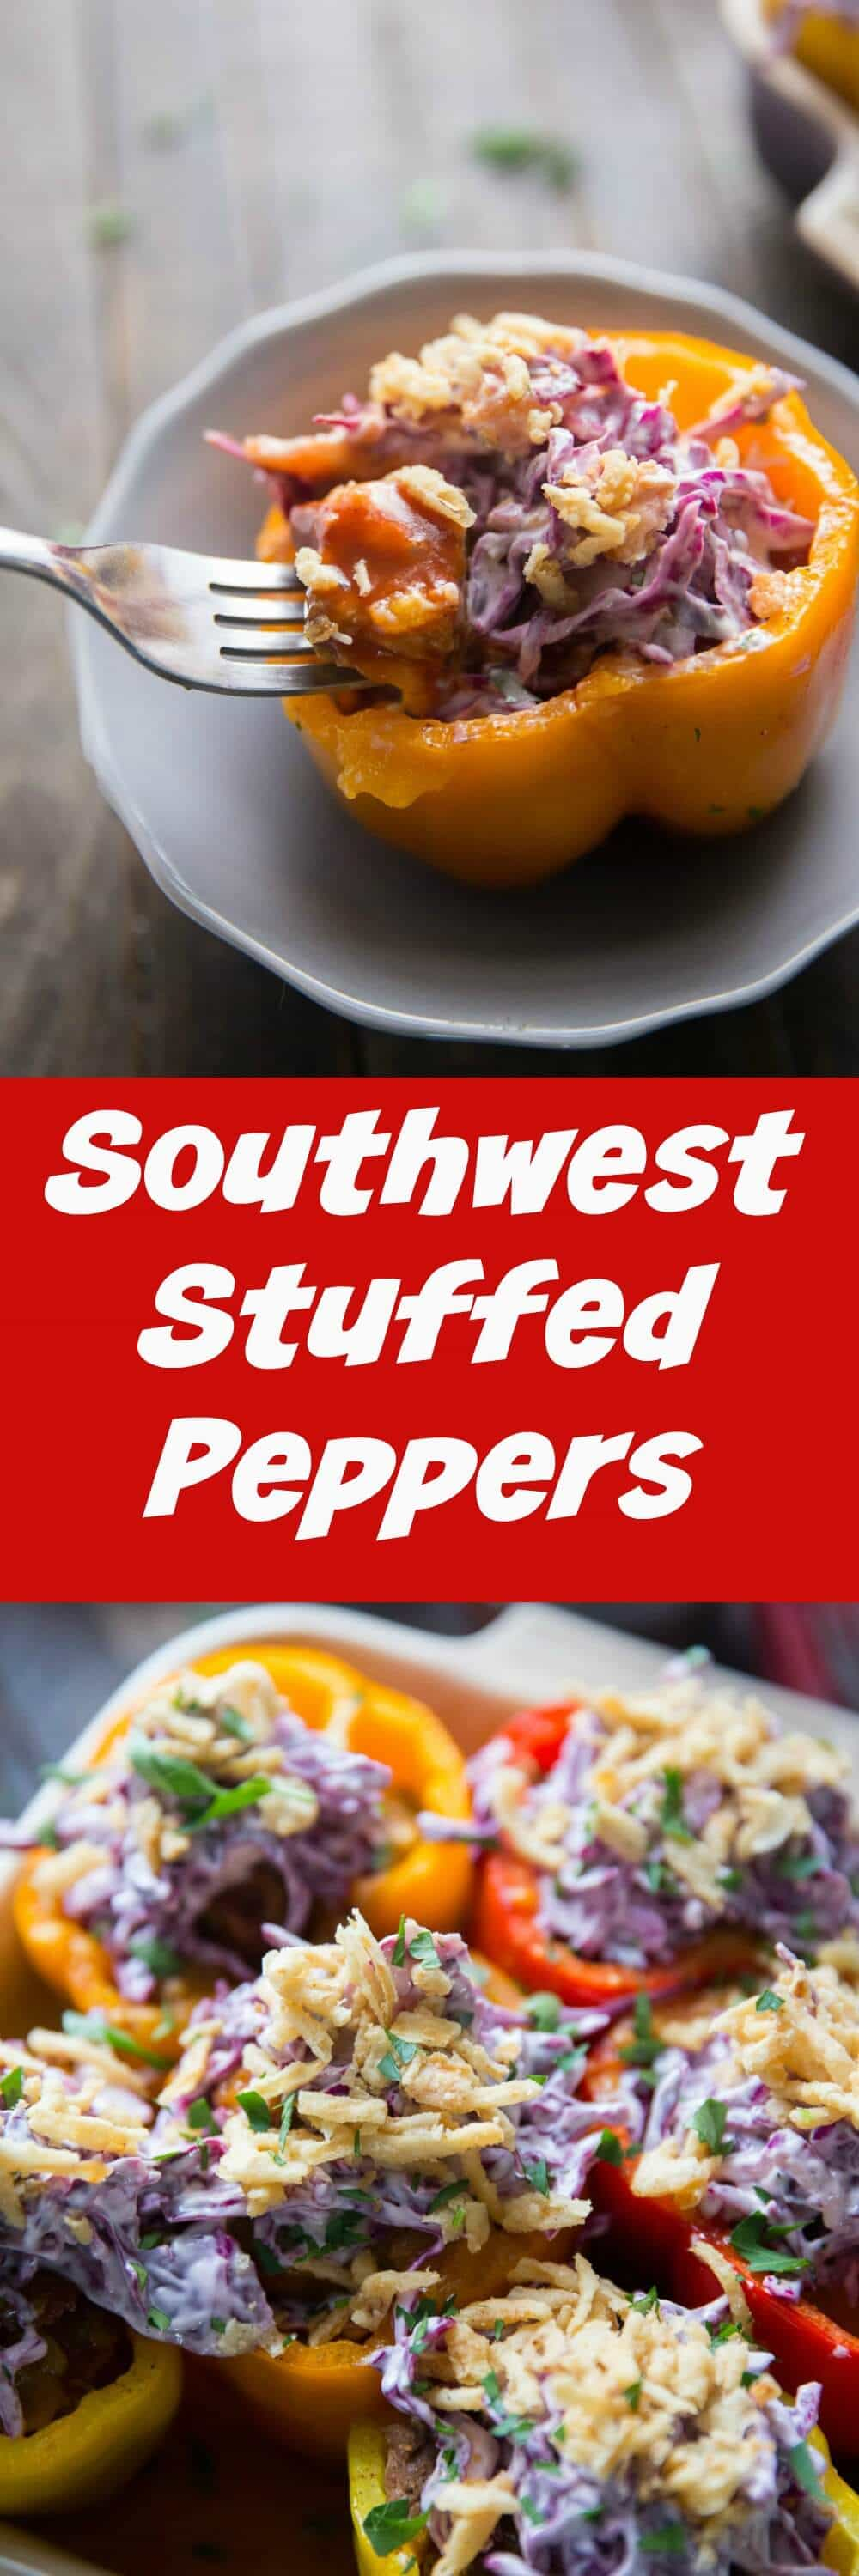 Forget ordinary stuffed peppers when you can have these Southwest Stuffed peppers instead! These peppers are filled with BBQ brisket and topped with slaw!